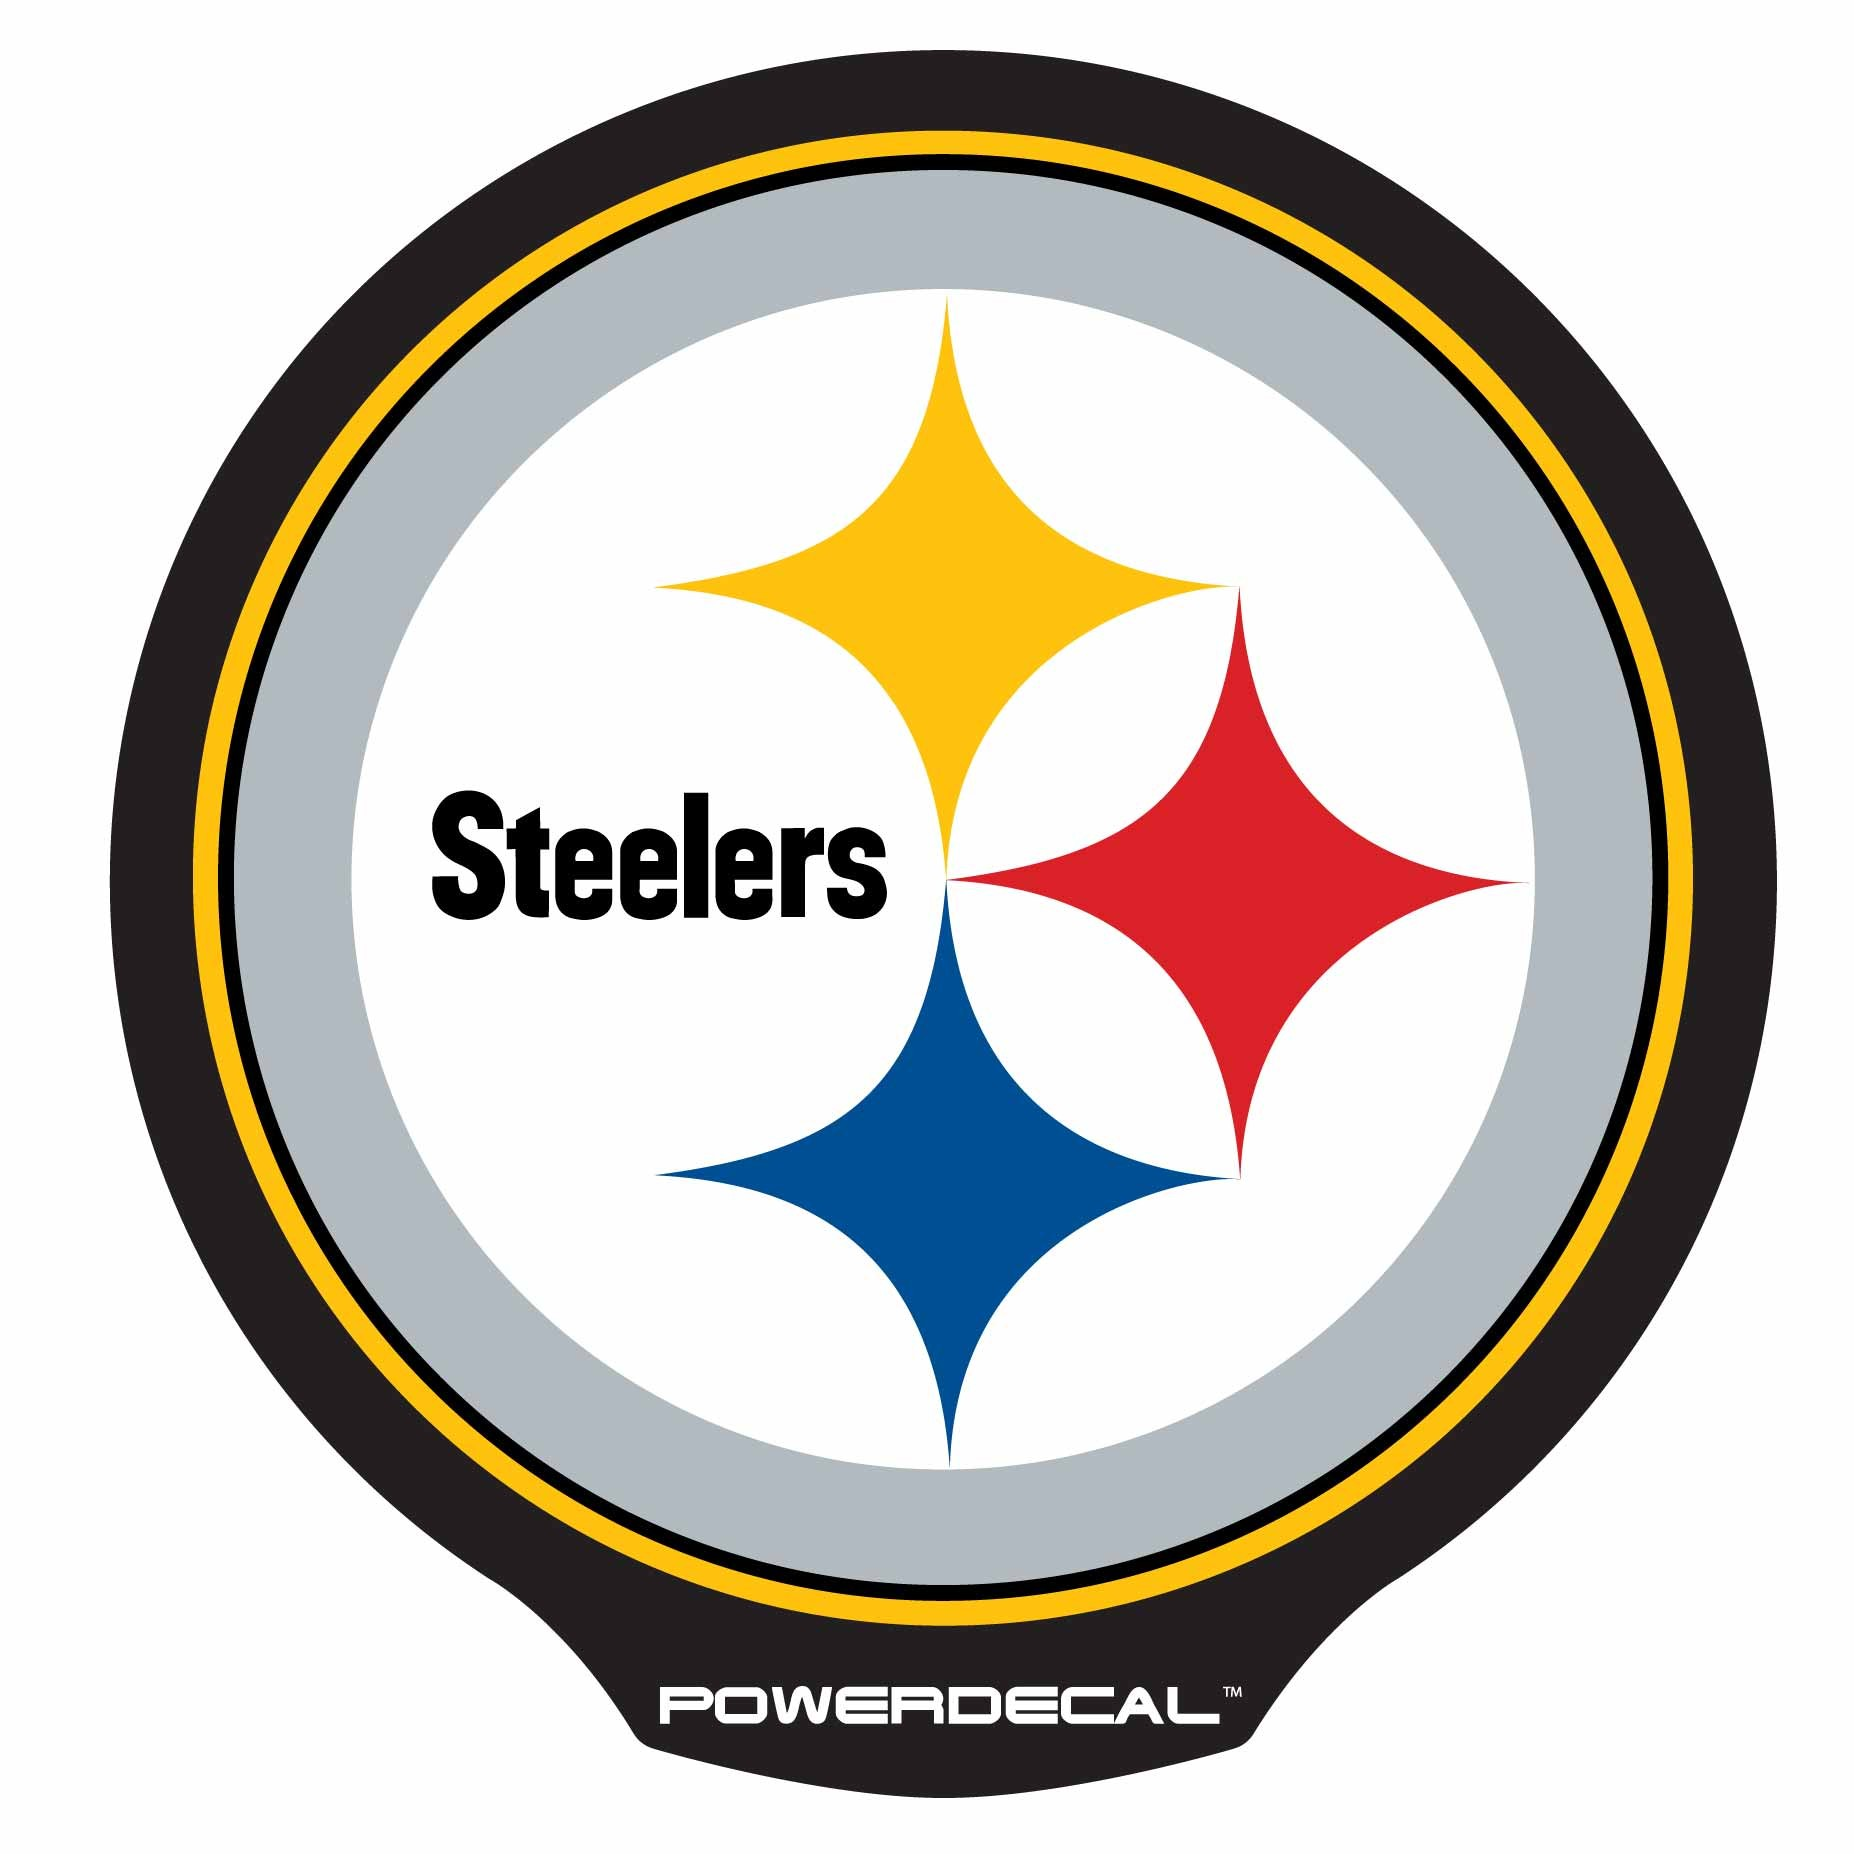 Steelers logo clipart free image free download Free Steelers Cliparts, Download Free Clip Art, Free Clip ... image free download